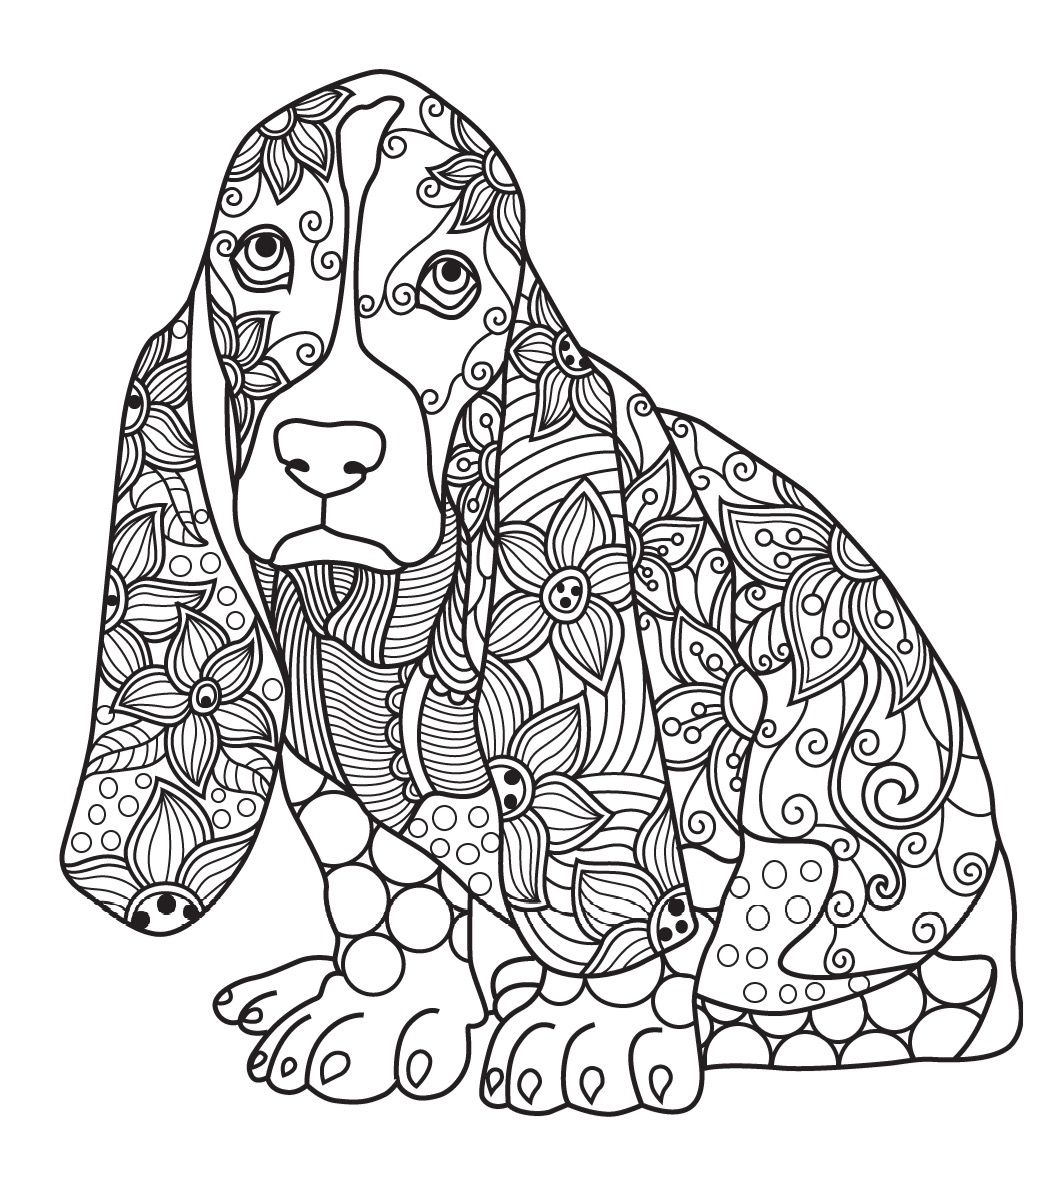 Dog Colorish Coloring Book For Adults Mandala Relax By